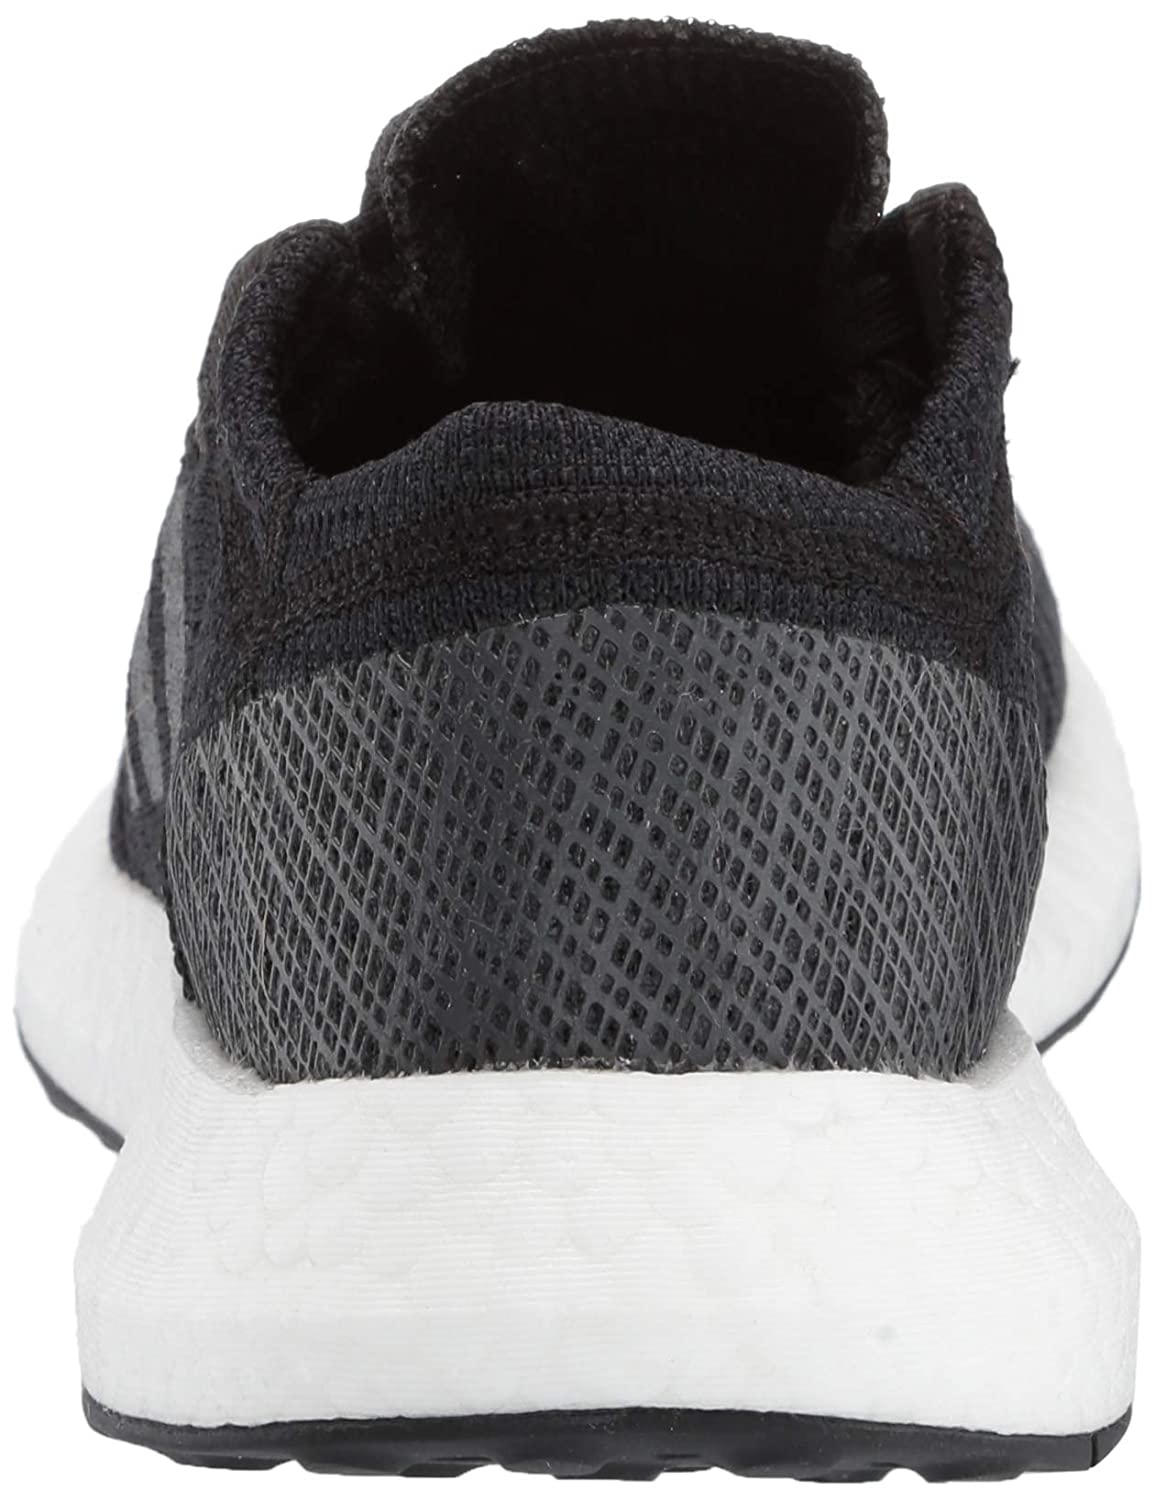 adidas Baby Pure Boost Go Running Shoe 10K M US Little Kid Black//Grey//Carbon